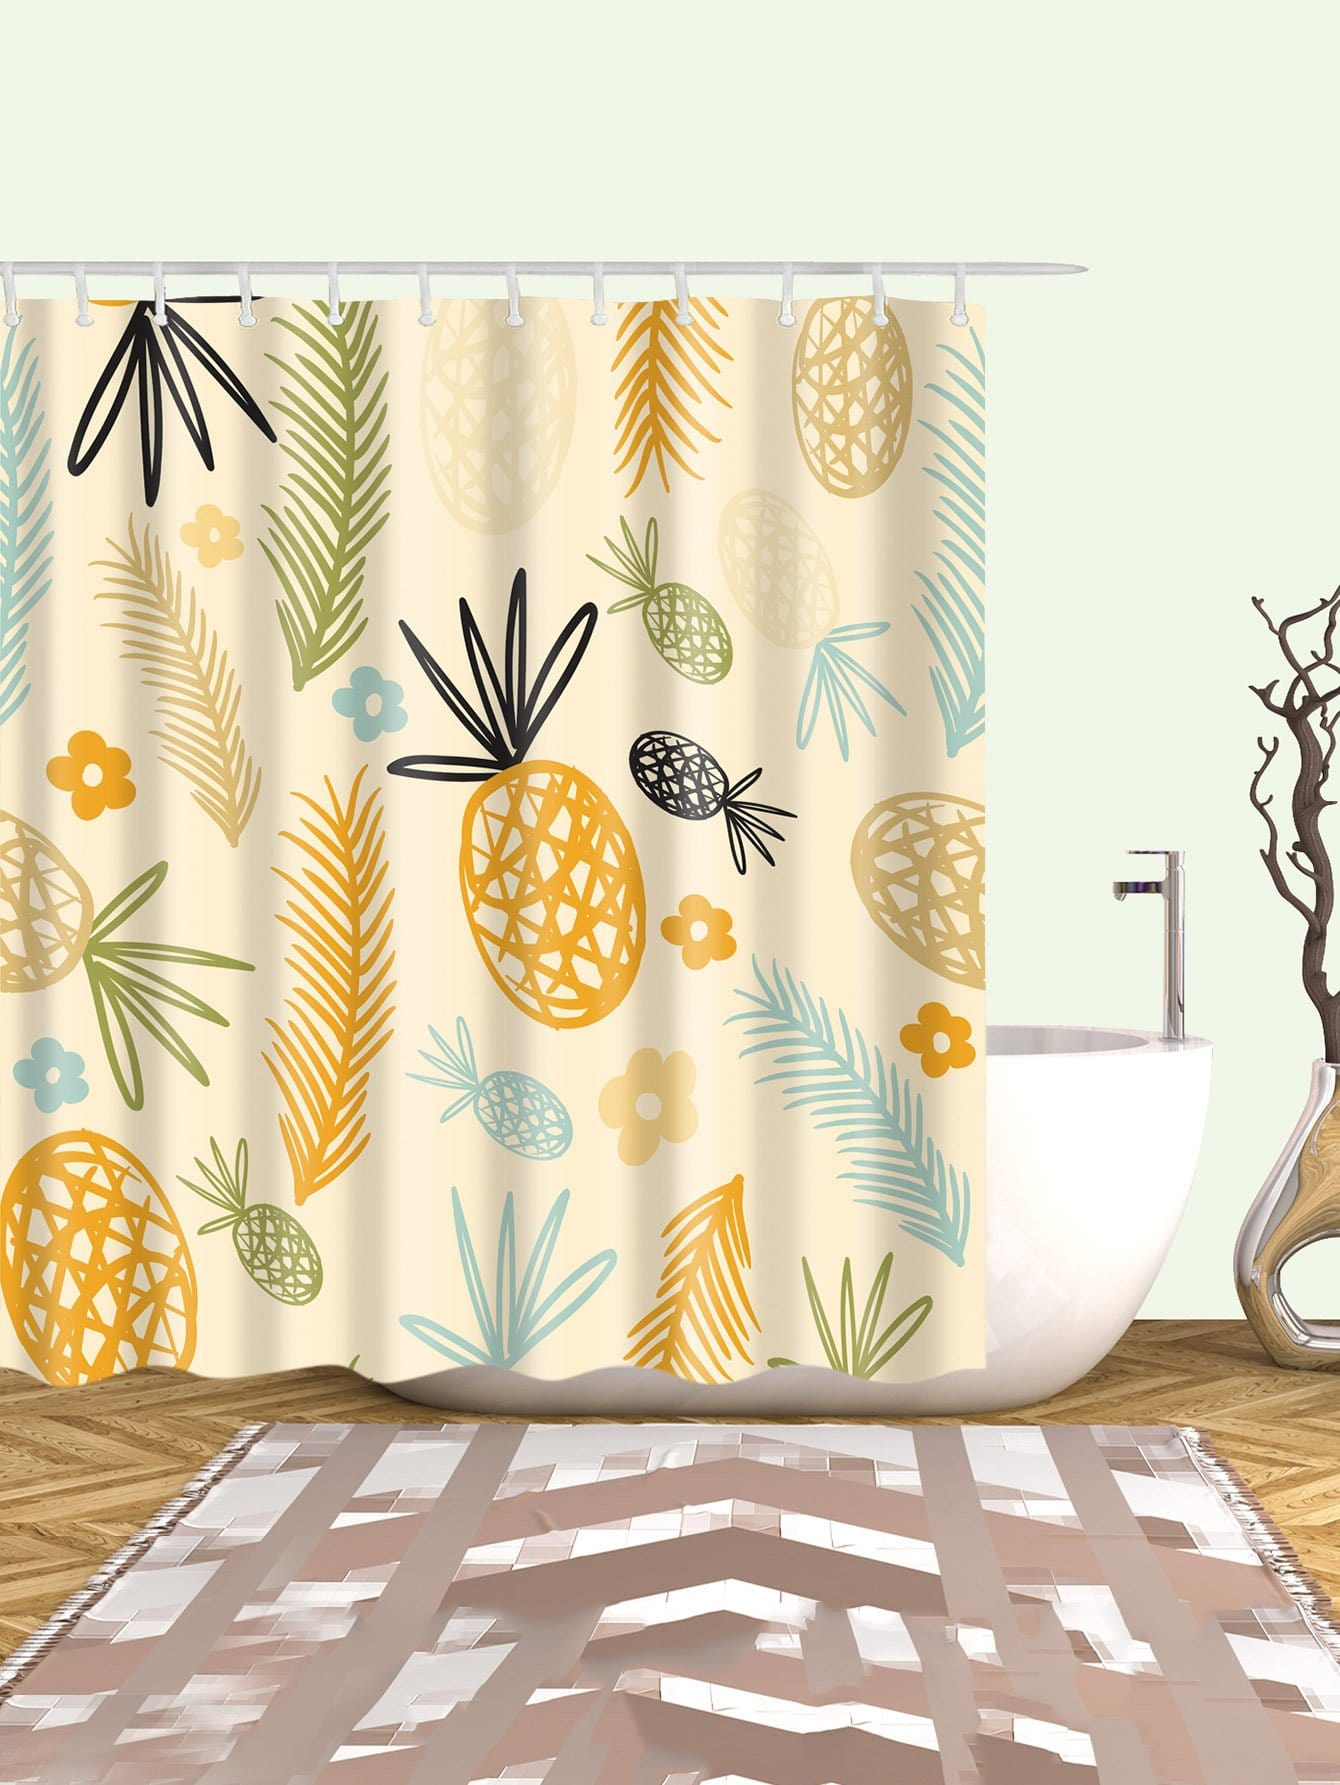 Pineapple Shower Curtain With 12pcs Hook geometric shower curtain with 12pcs hook